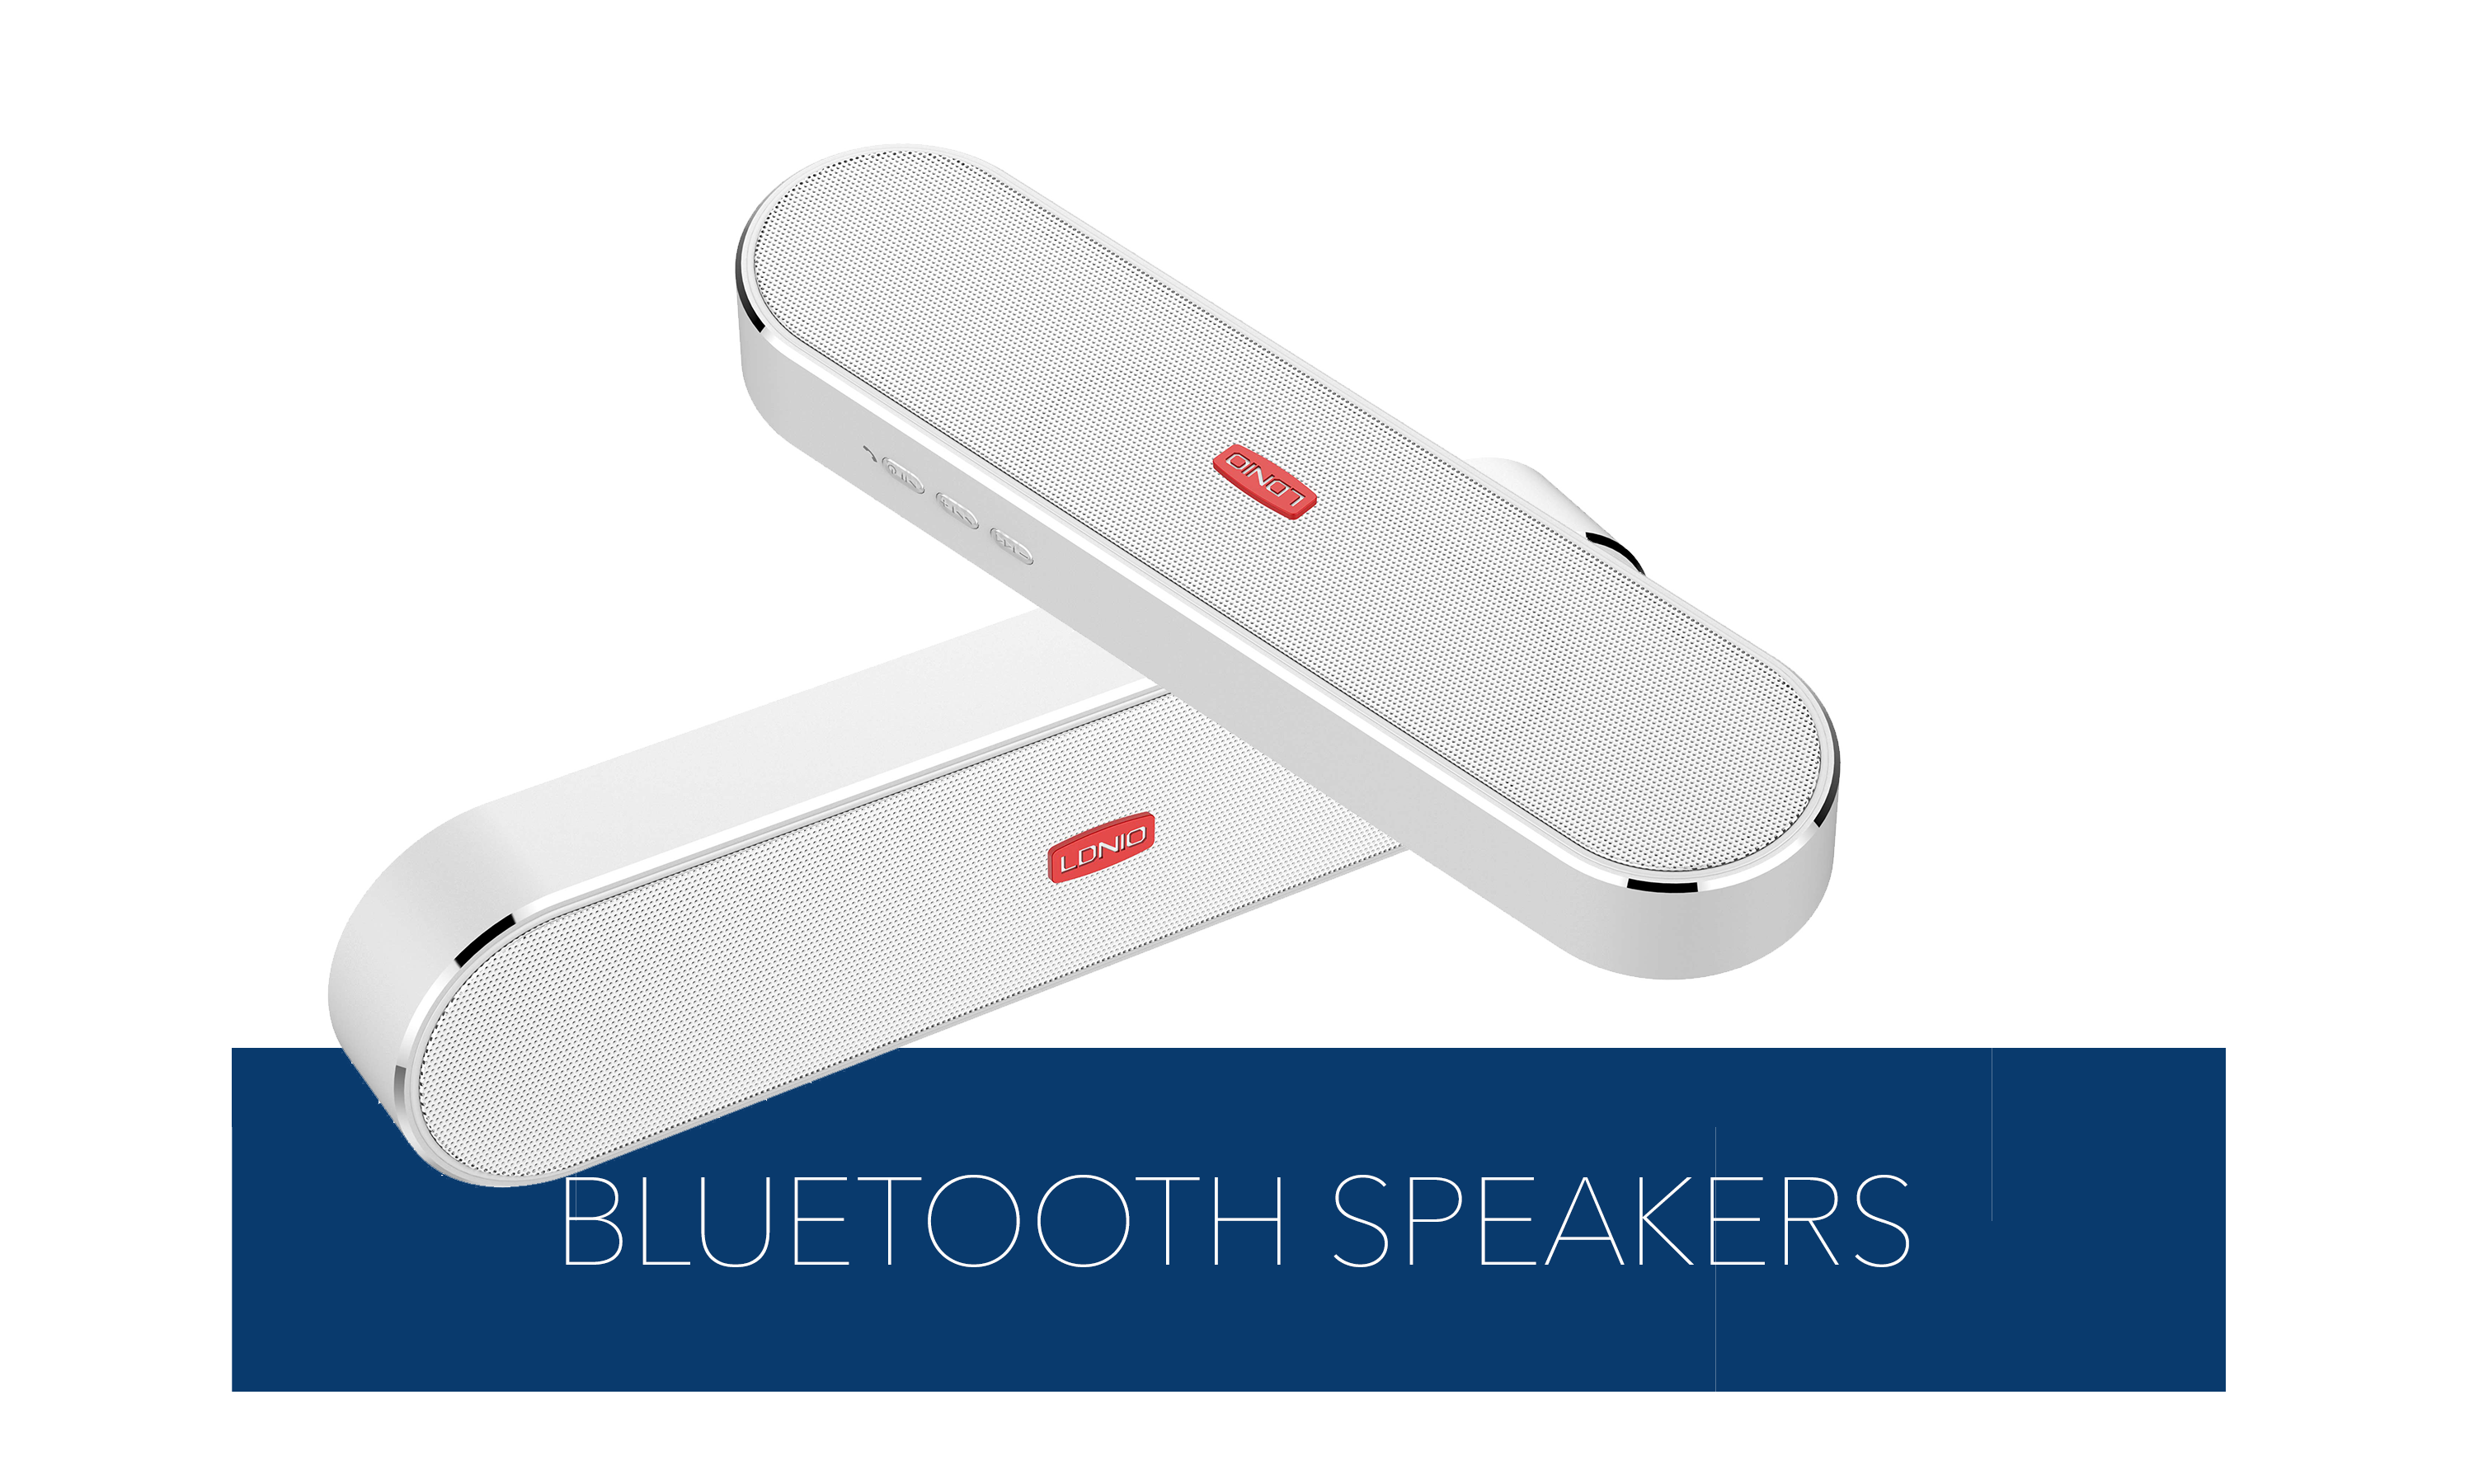 (BLUETOOTH SPEAKERS) Button